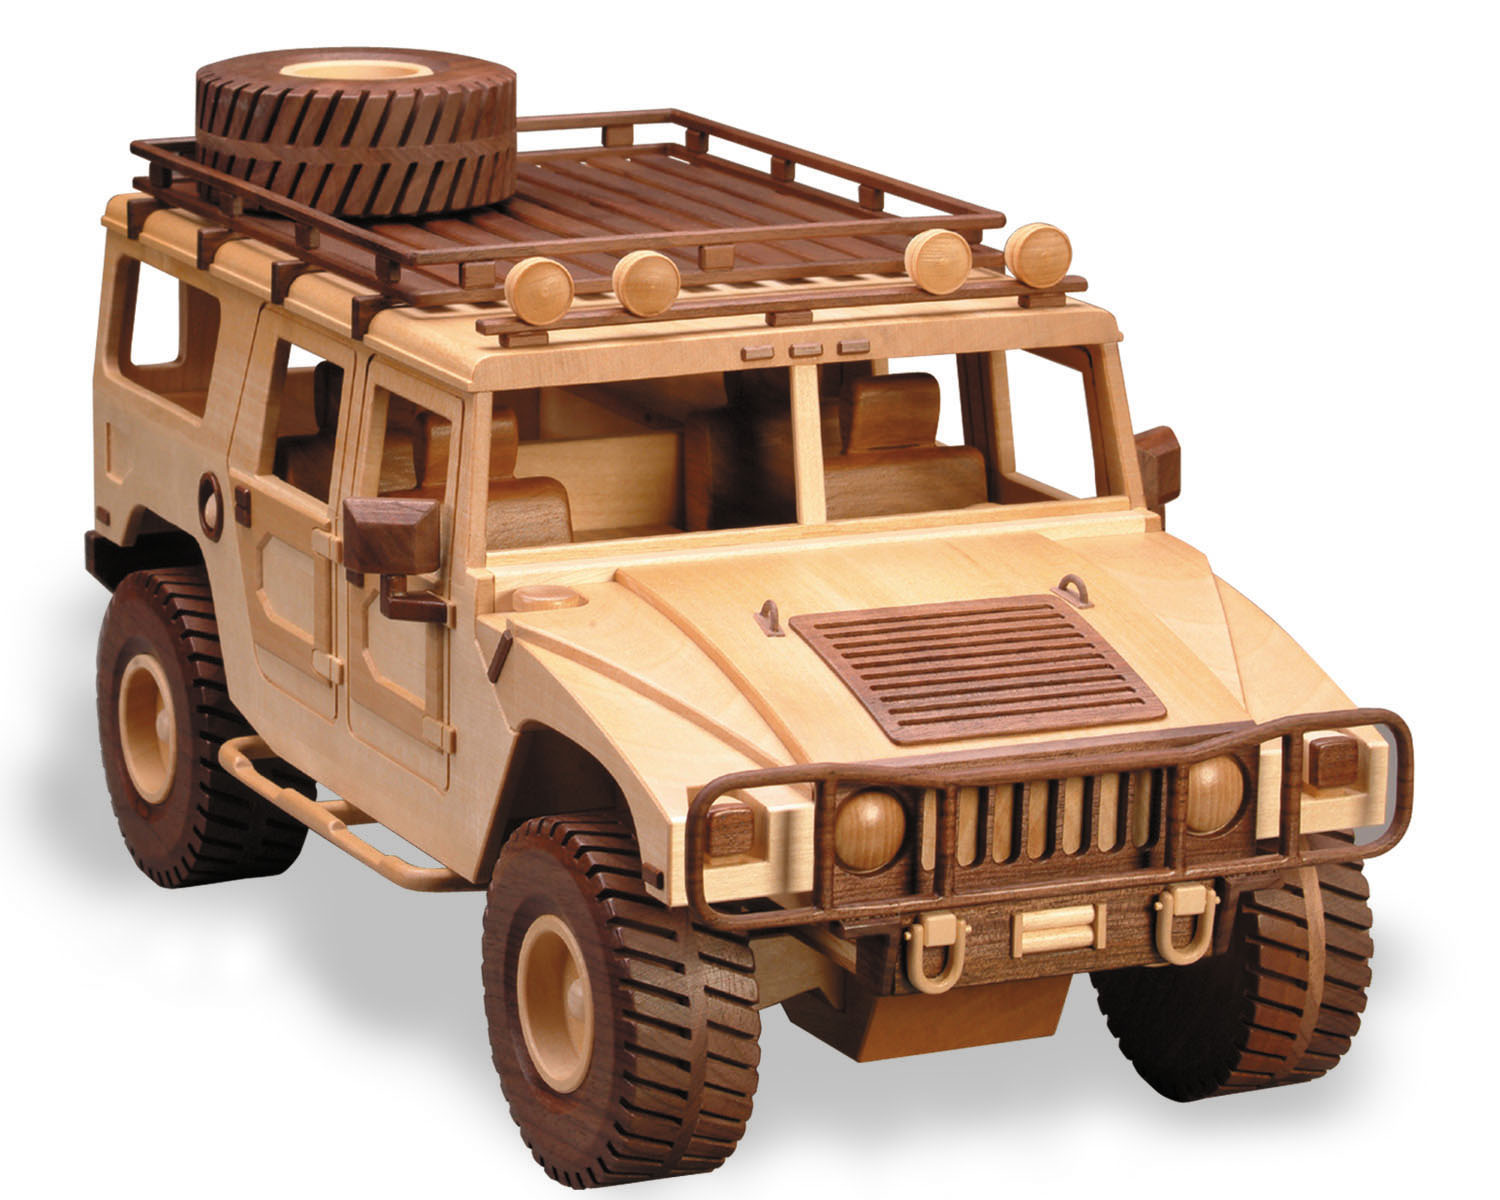 Woodworking Plans Toy Truck : Patterns kits trucks the hummer